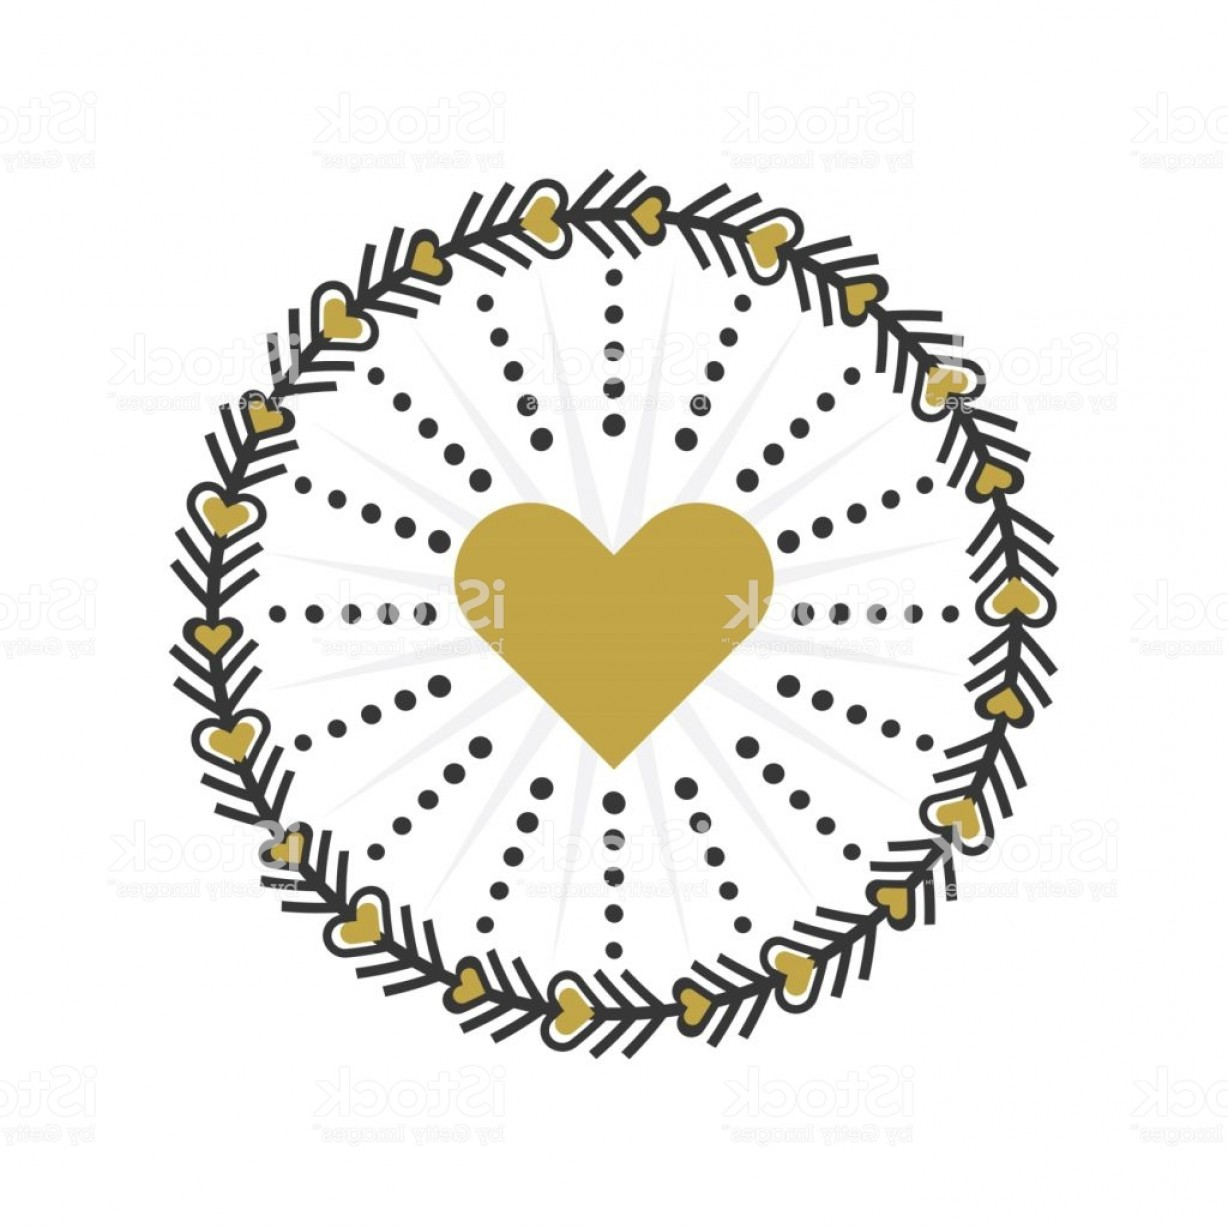 Wreath Circle Logo Vector: Black And Golden Circle Heart Wreath Emblem Icons On White Background Gm